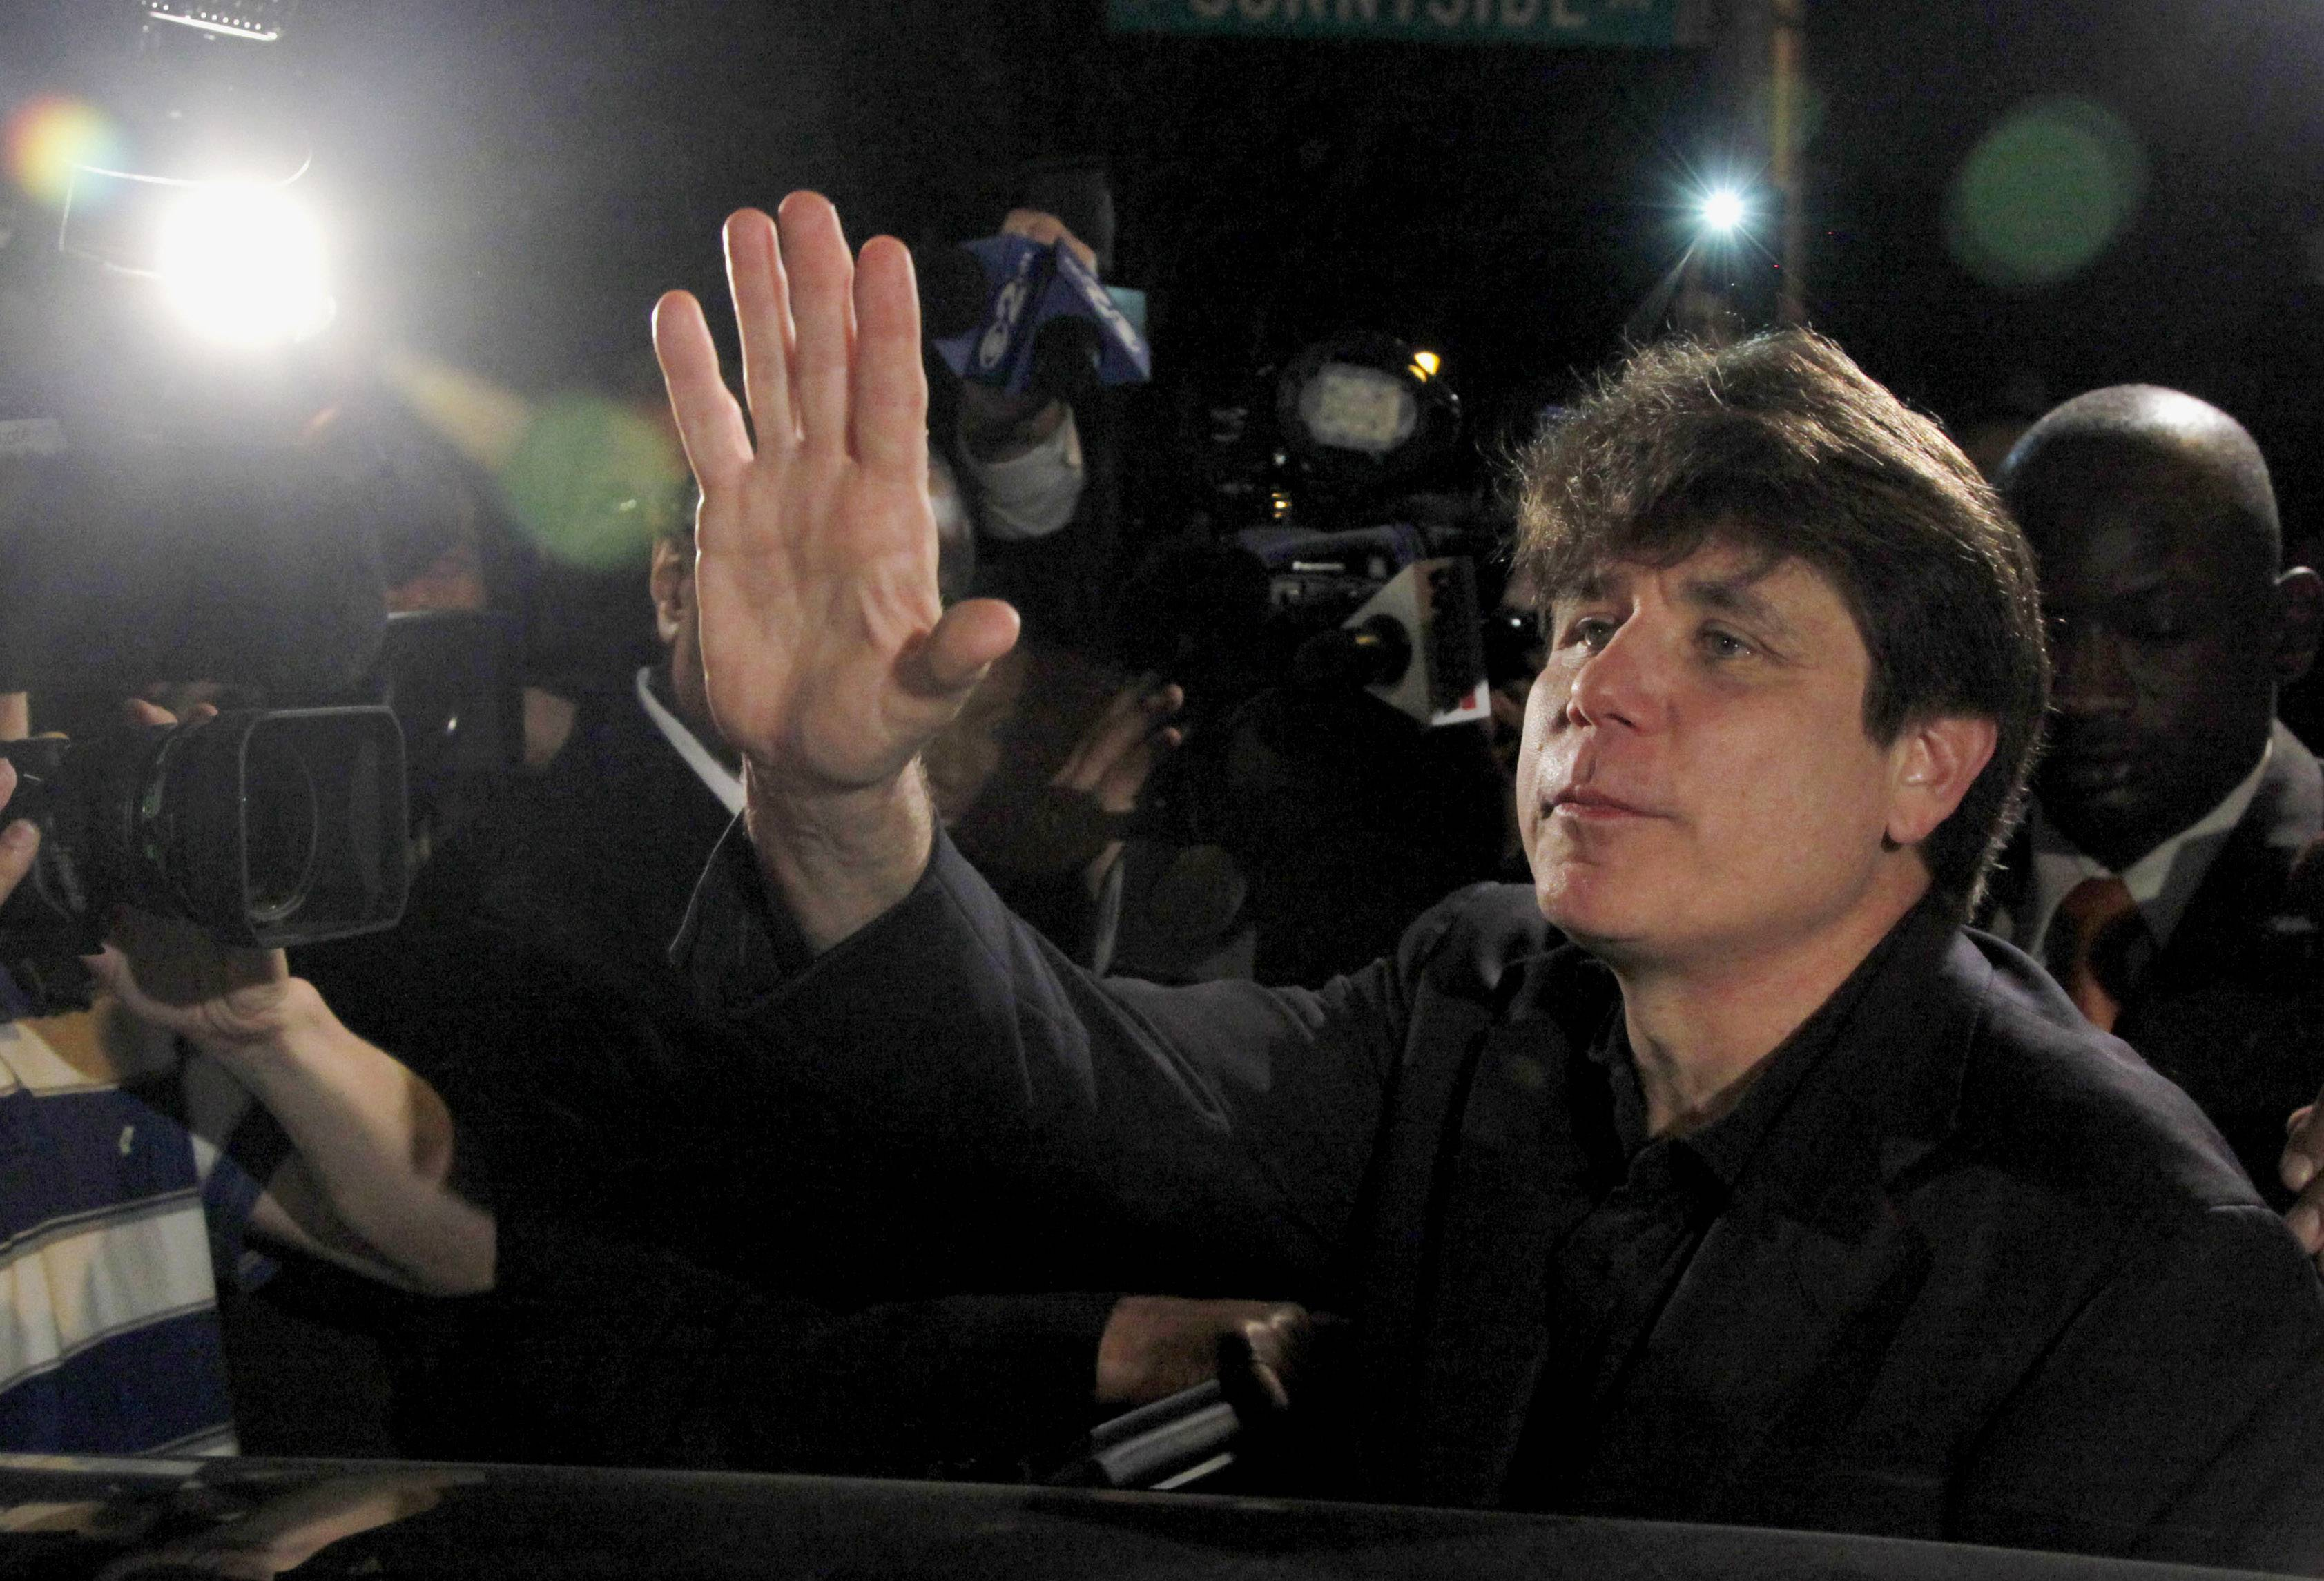 Former Illinois Gov. Rod Blagojevich waves as he departs his Chicago home March 15, 2012, for Littleton, Colo., to begin his 14-year prison sentence on corruption charges. On Tuesday, the 7th U.S. Court of Appeals in Chicago said transcripts of FBI wiretaps not played at Blagojevich's corruption trials will remain sealed. The court is still mulling its decision on the imprisoned former Illinois governor's request to toss his convictions.